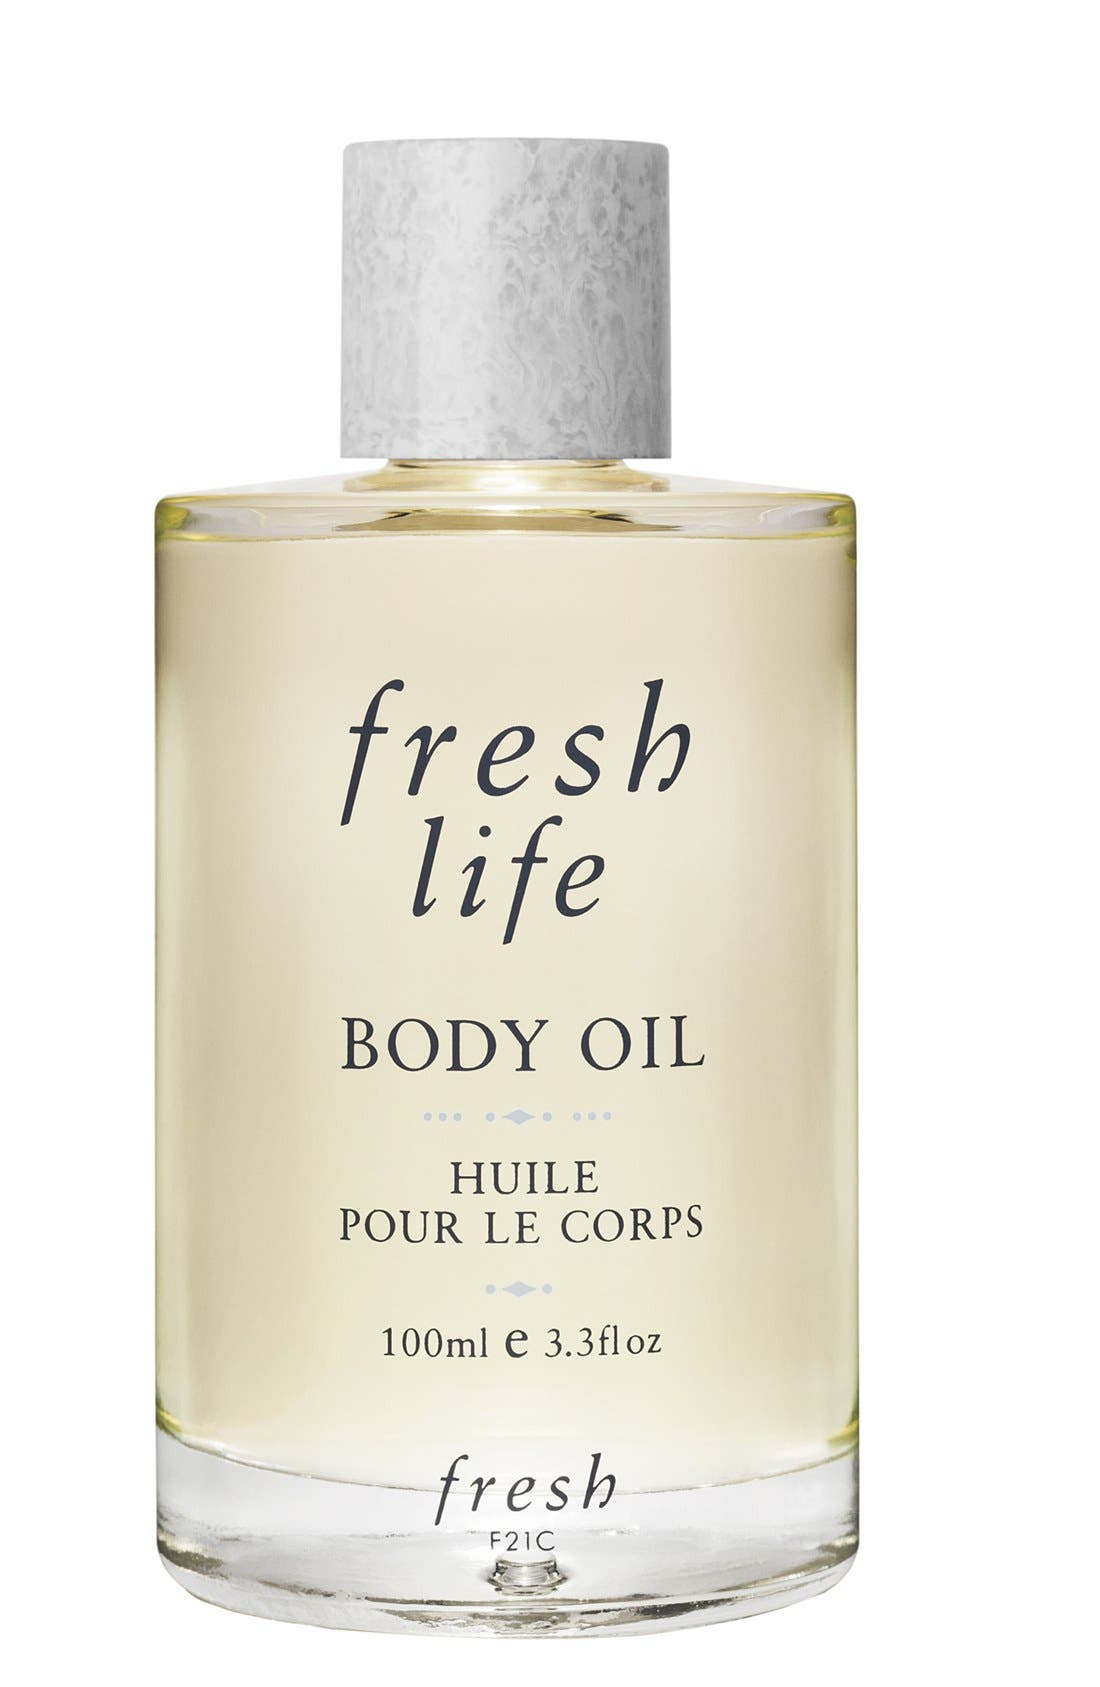 Fresh® 'Life' Body Oil